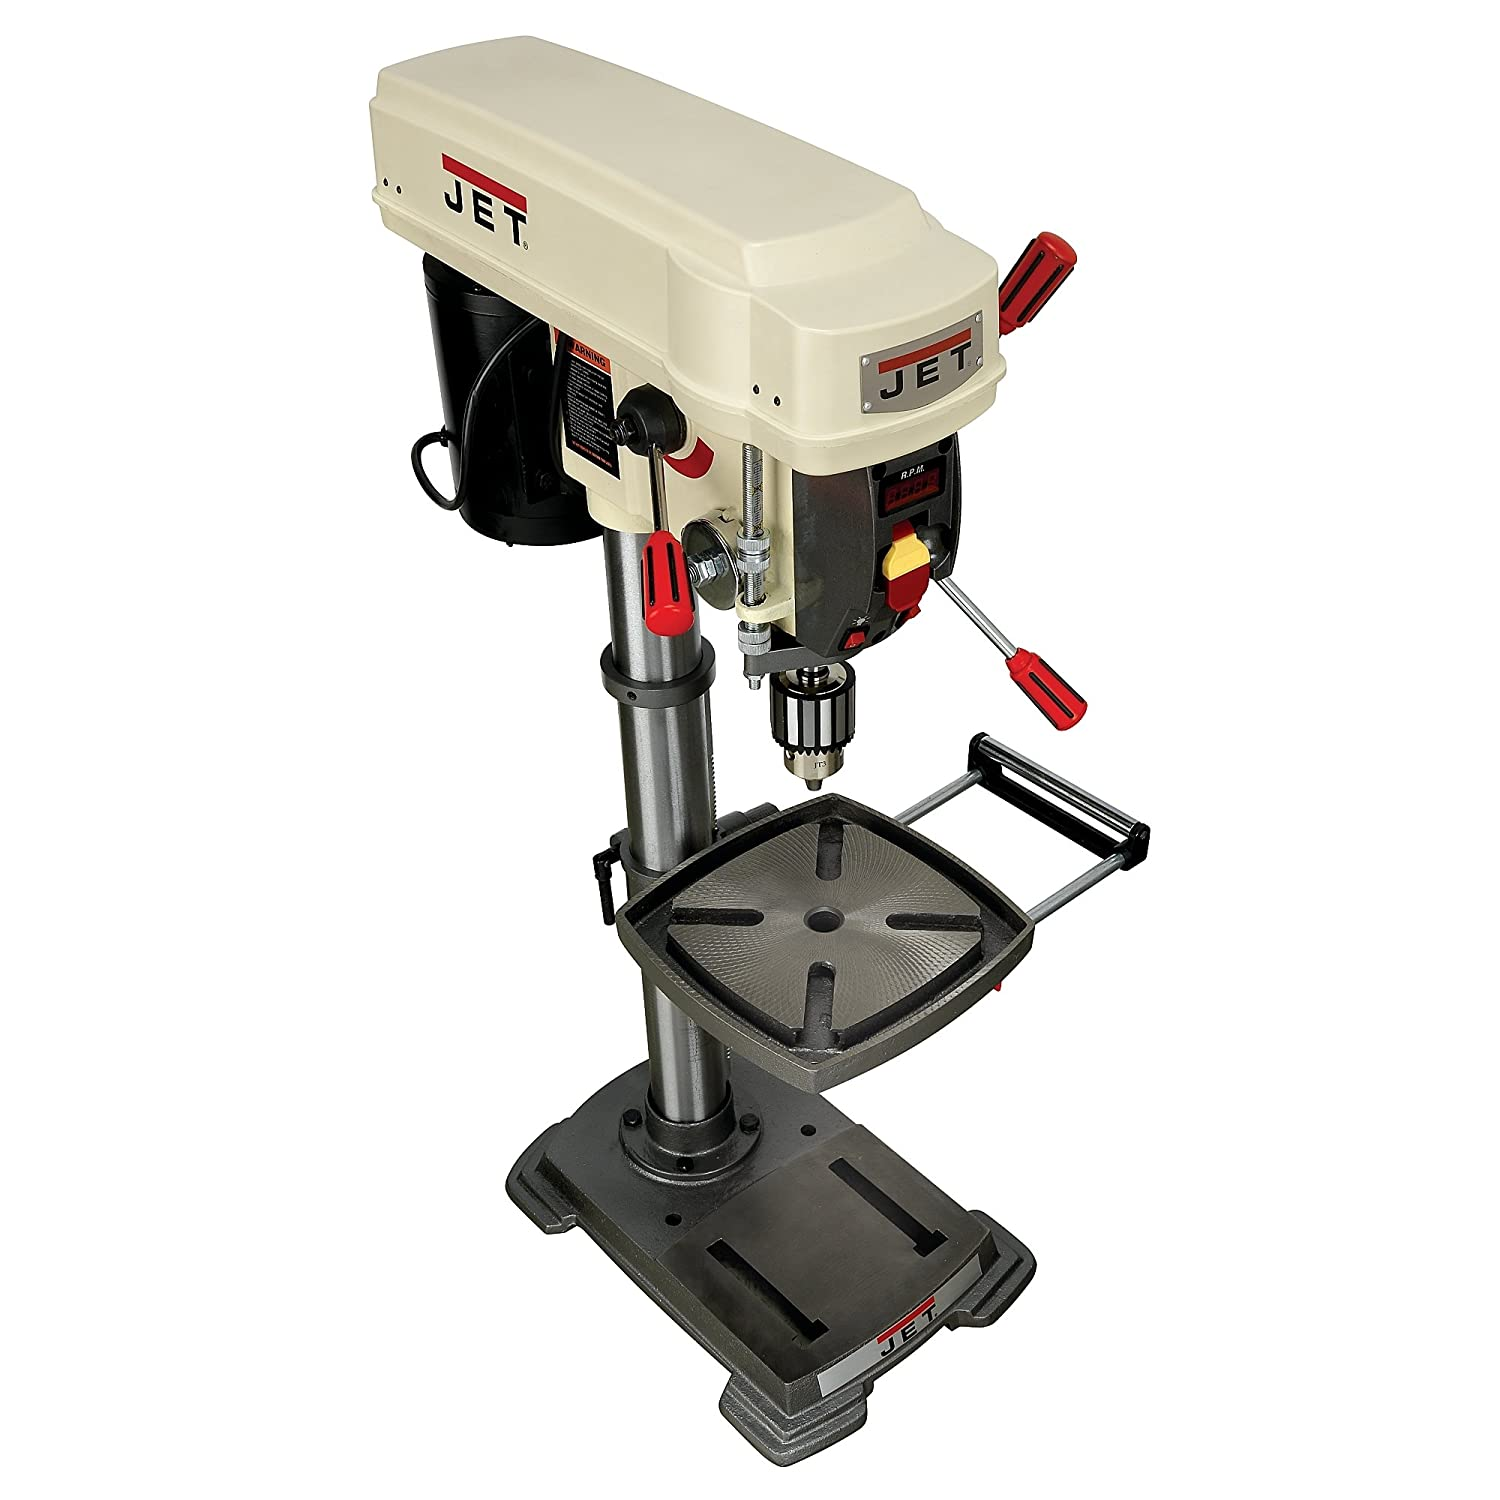 What To Look For When Purchasing A Drill Press Fundamentals Of Woodworking